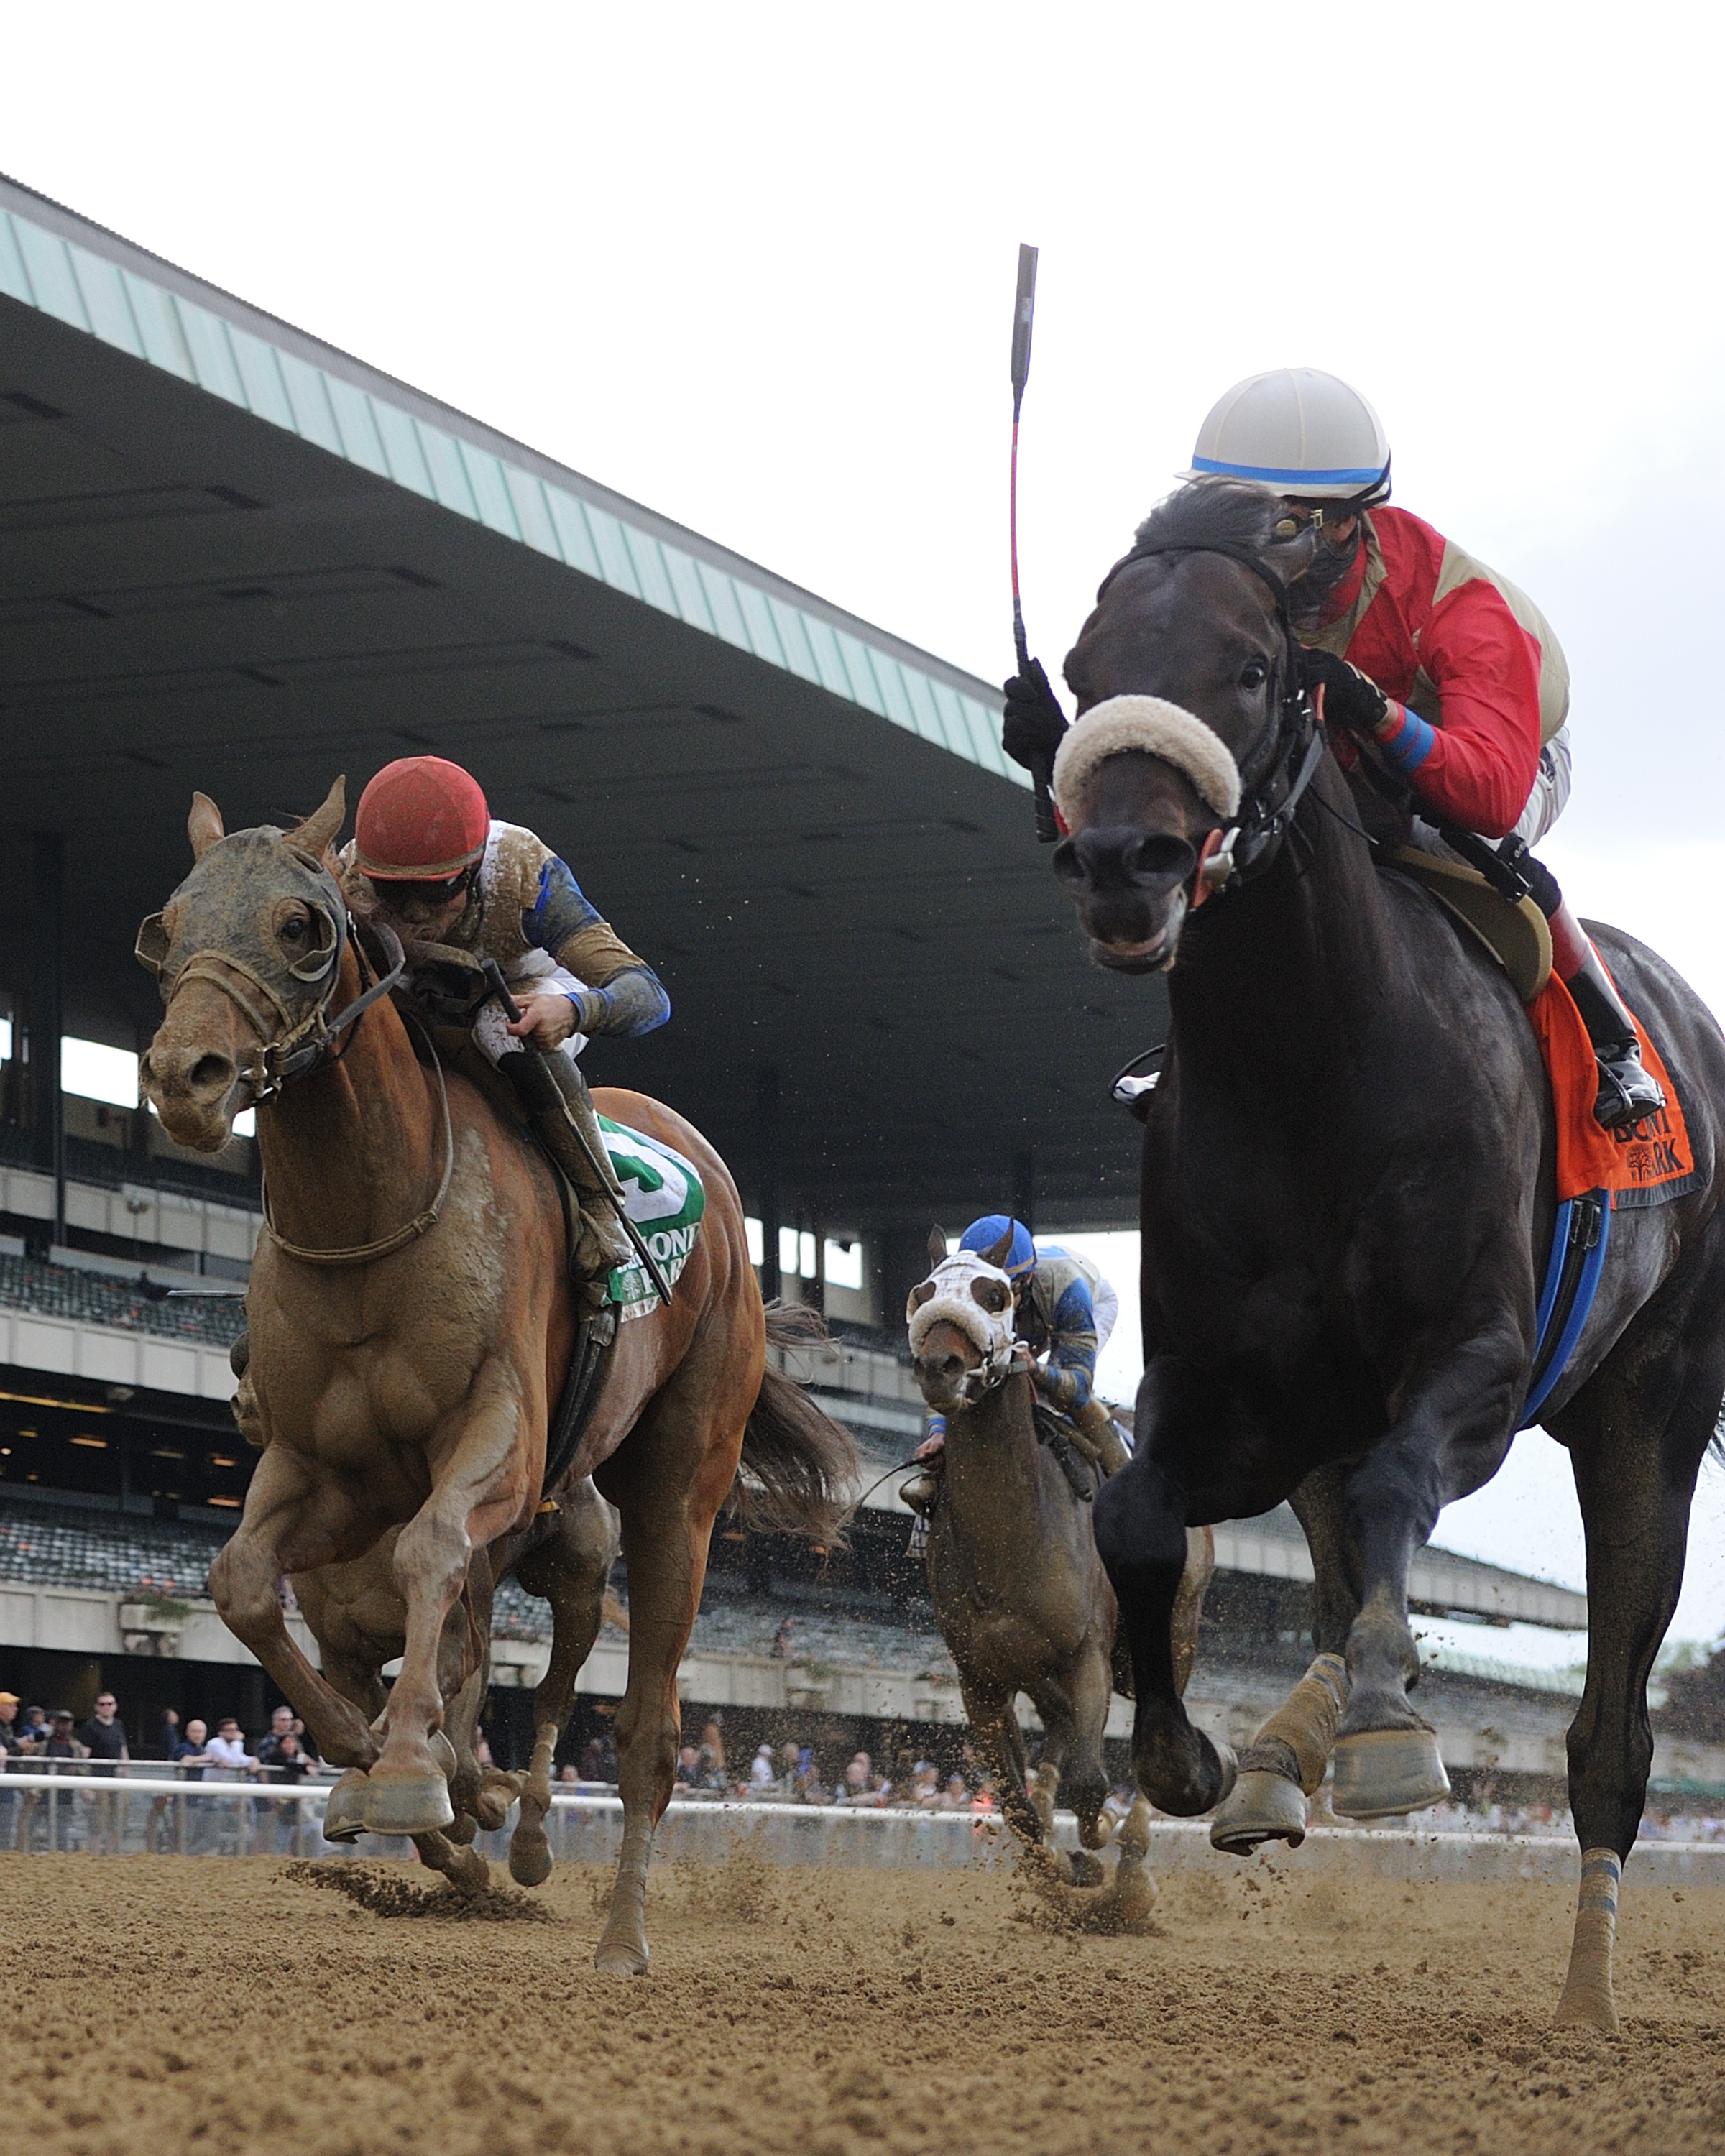 Governor Malibu (left) runs at Unified in the Peter Pan Stakes at Belmont Park (photo via NYRA/Adam Coglianese).